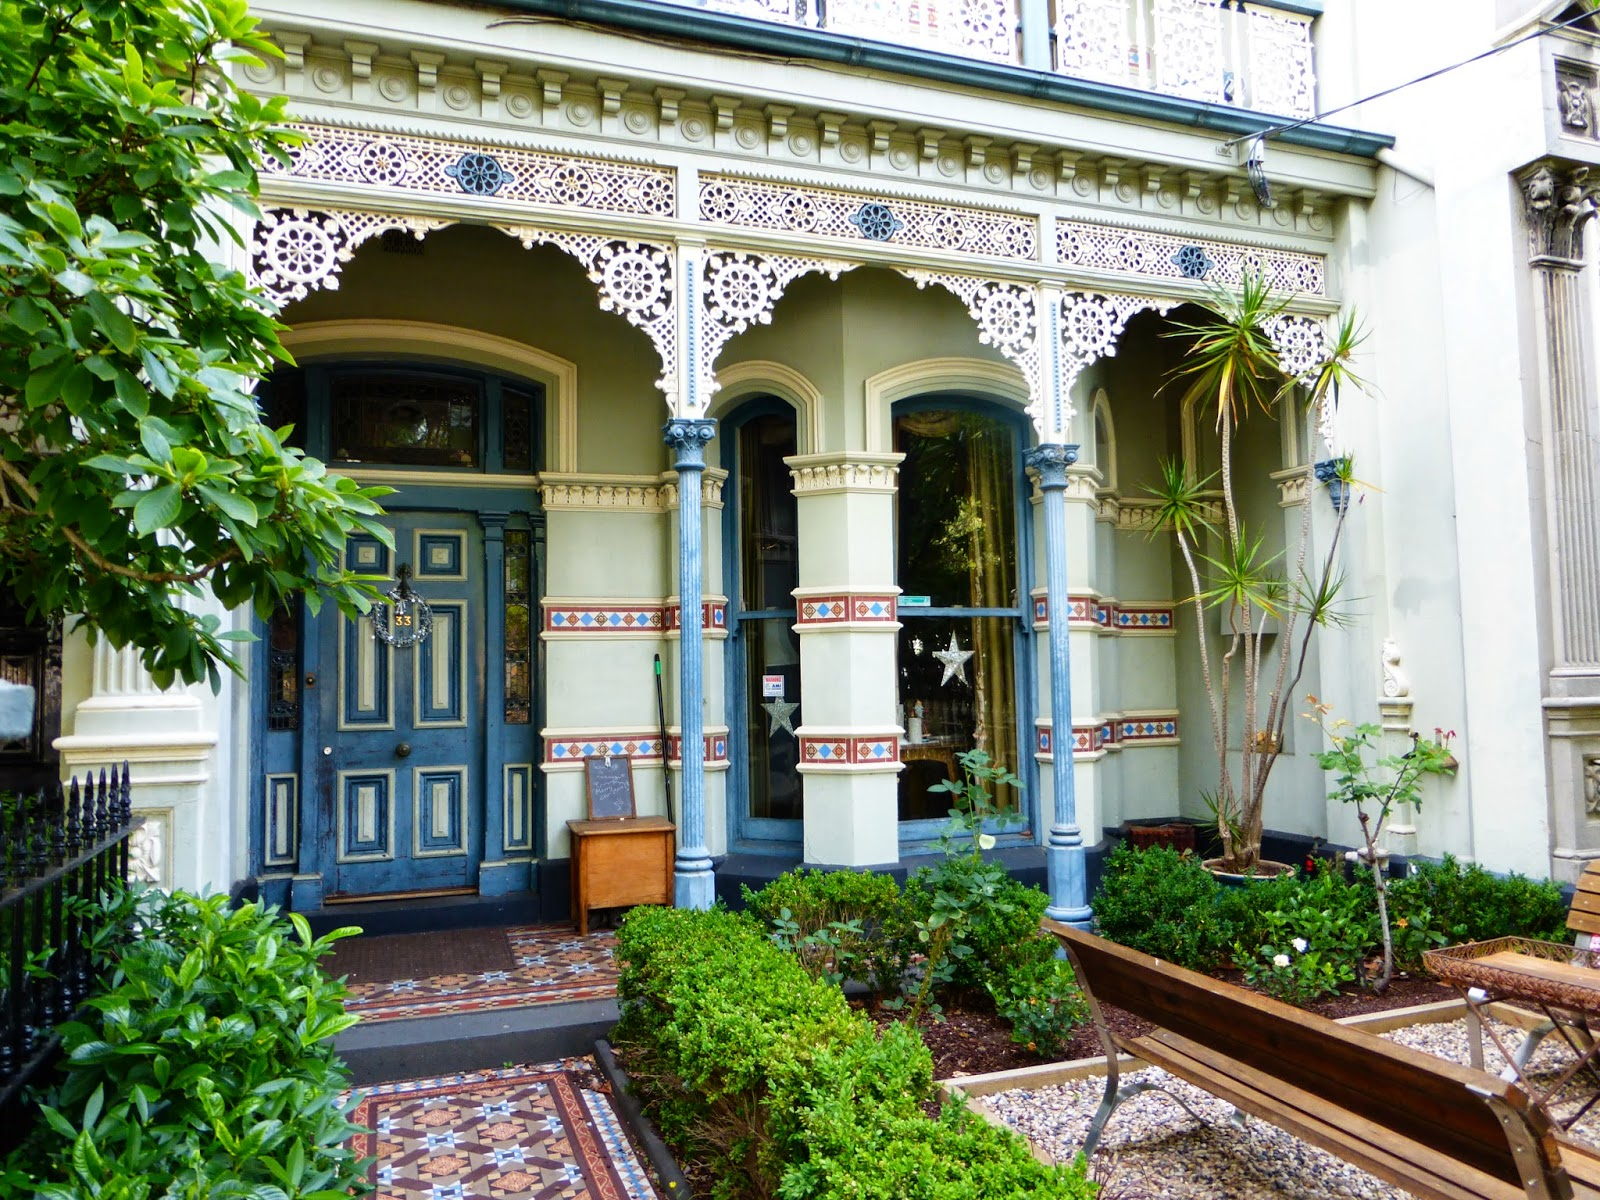 My vintage journeys victorian homes of melbourne australia for Home architecture melbourne